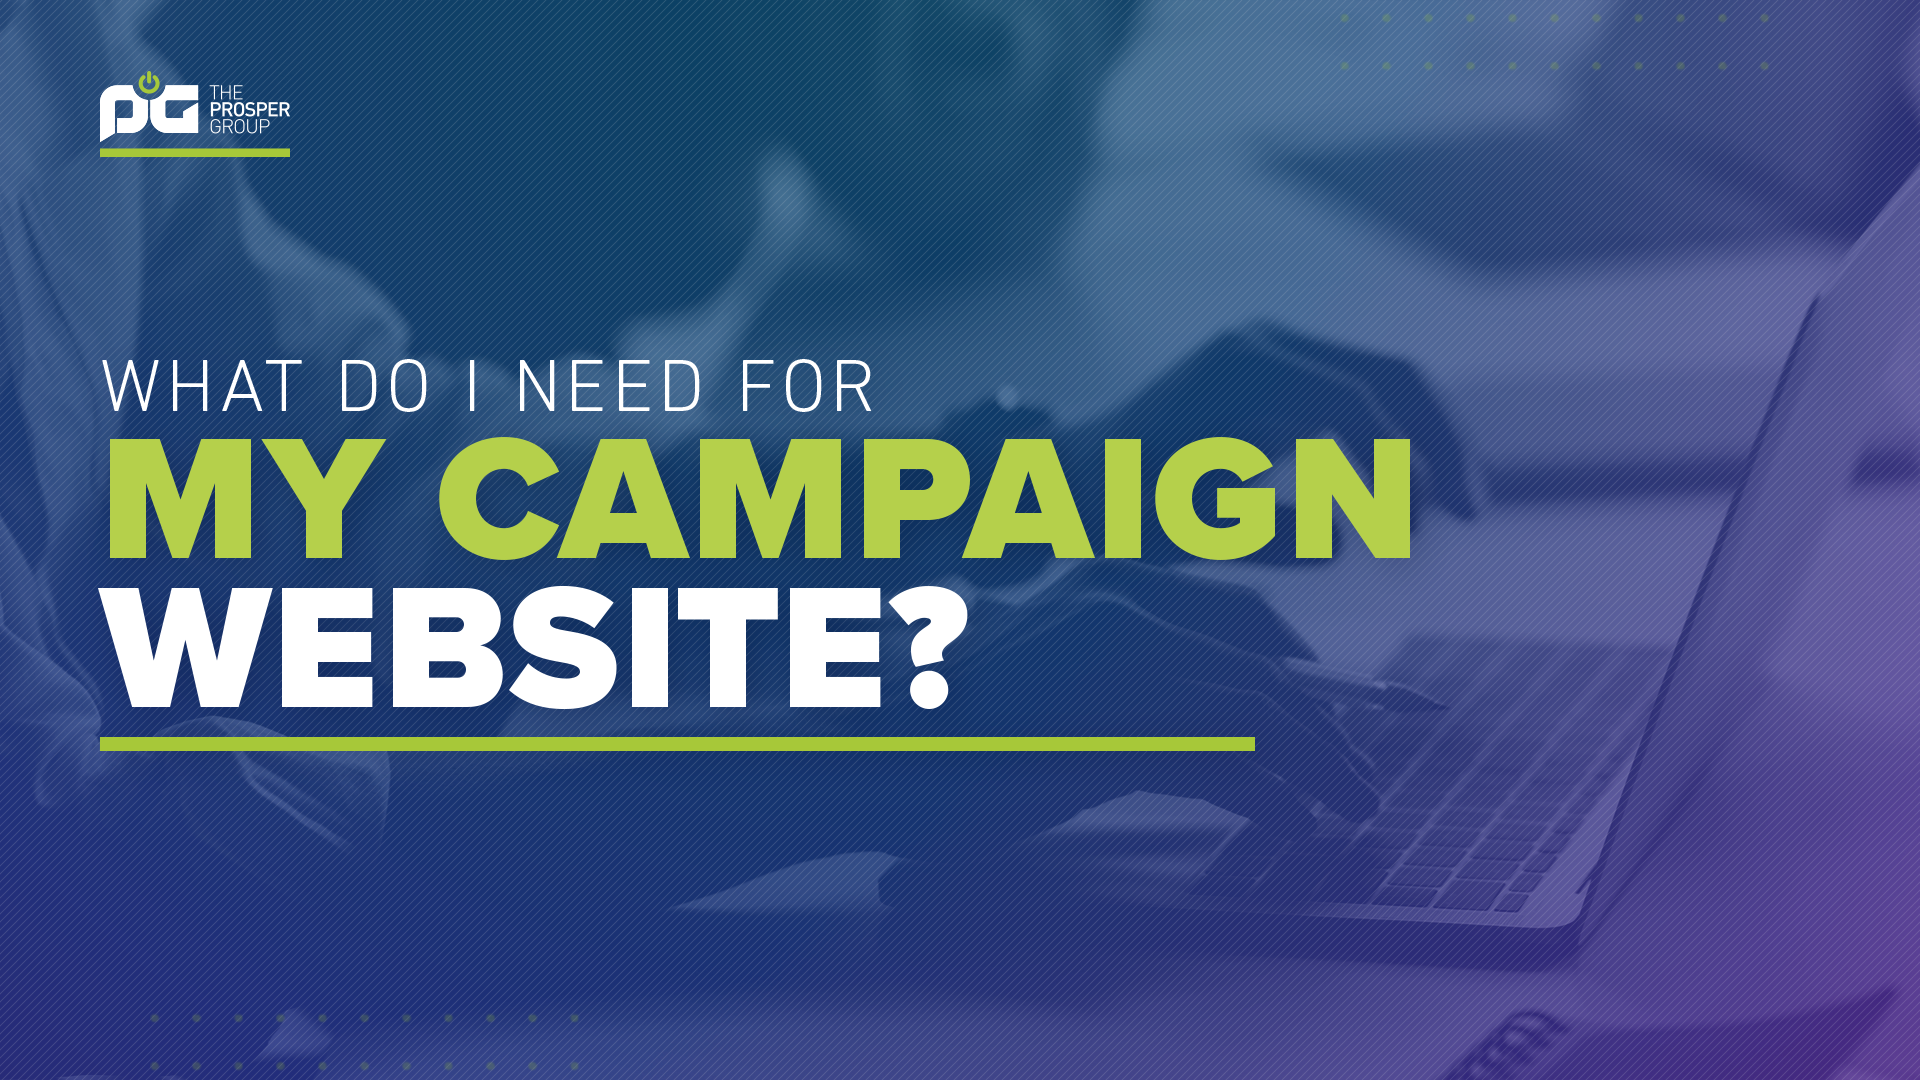 What do I need for my campaign website?